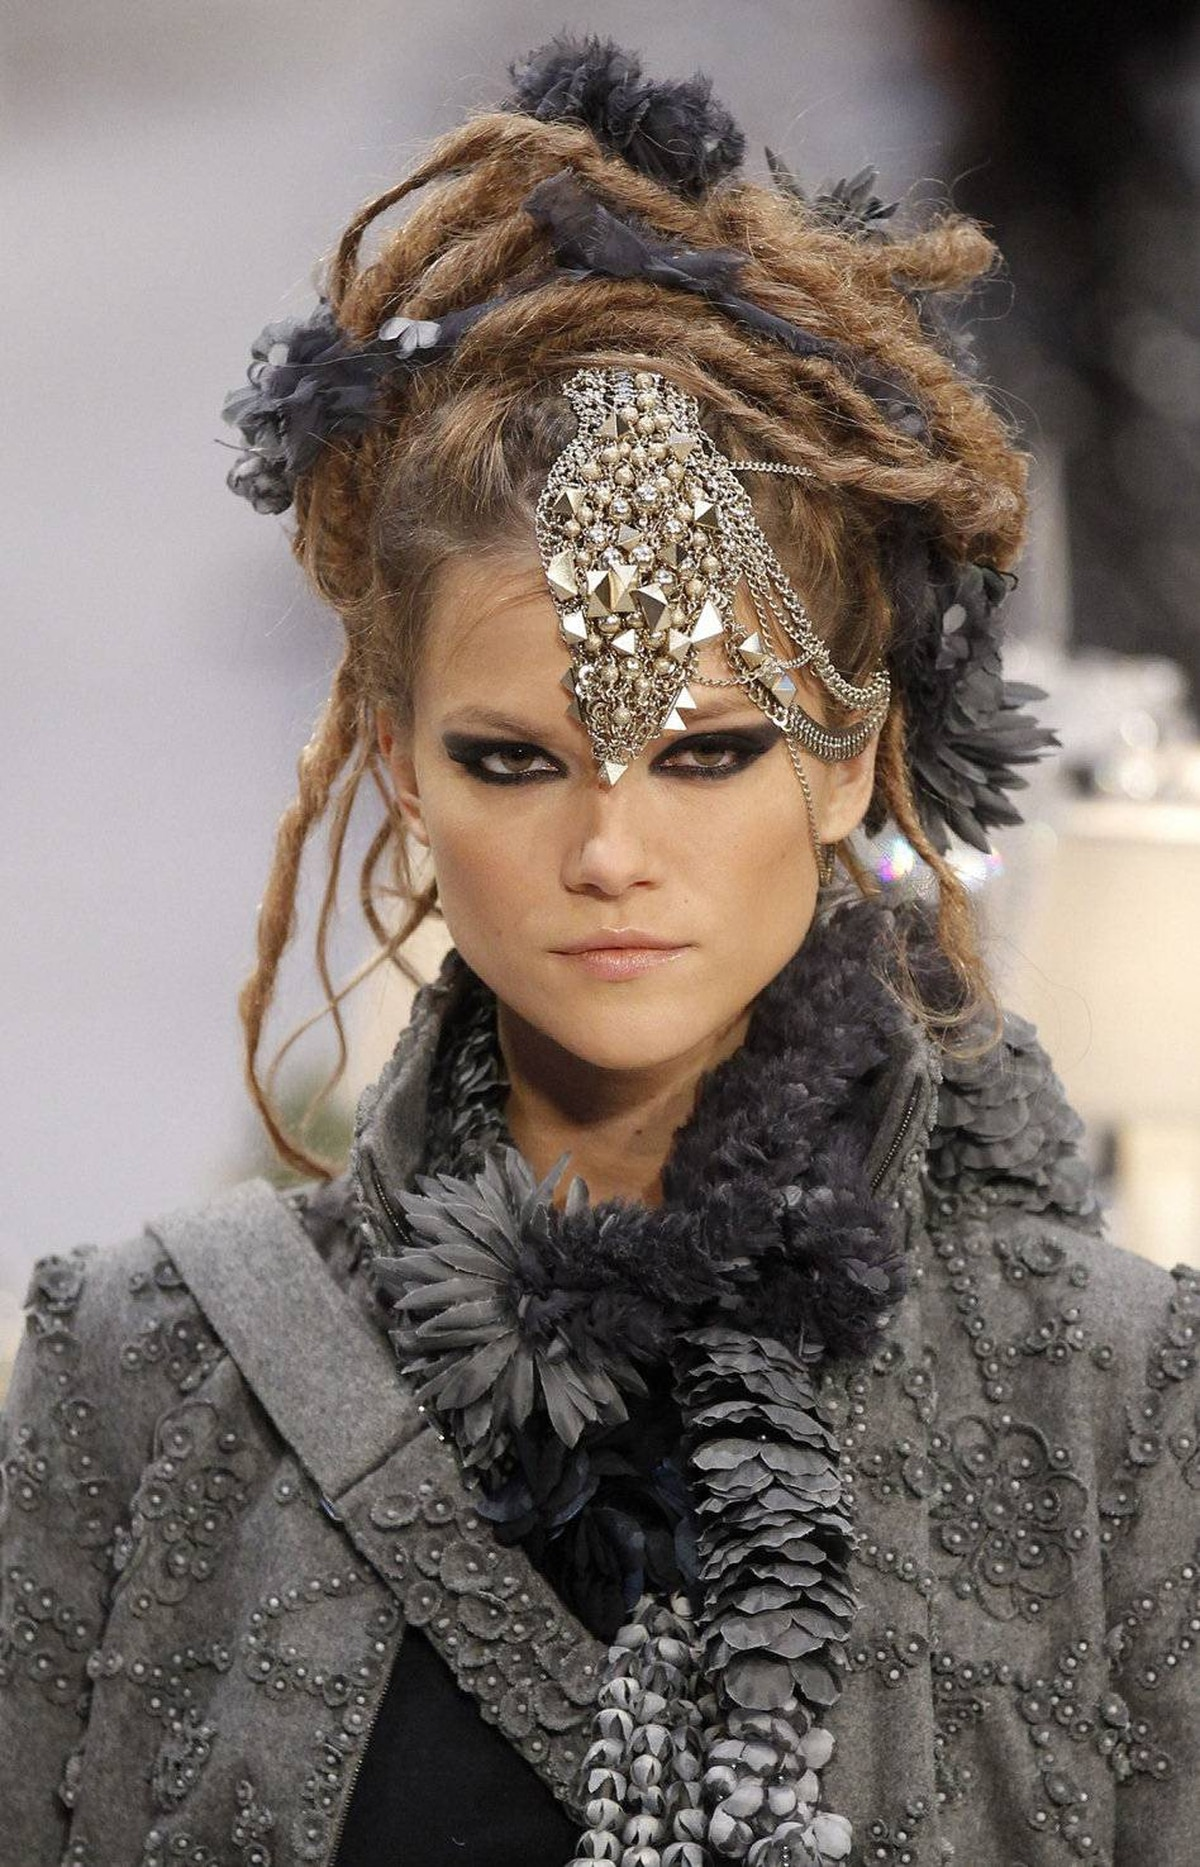 Luxury is being able to combine faux dreadlock hair with an intricately beaded, appliquéd jacket.